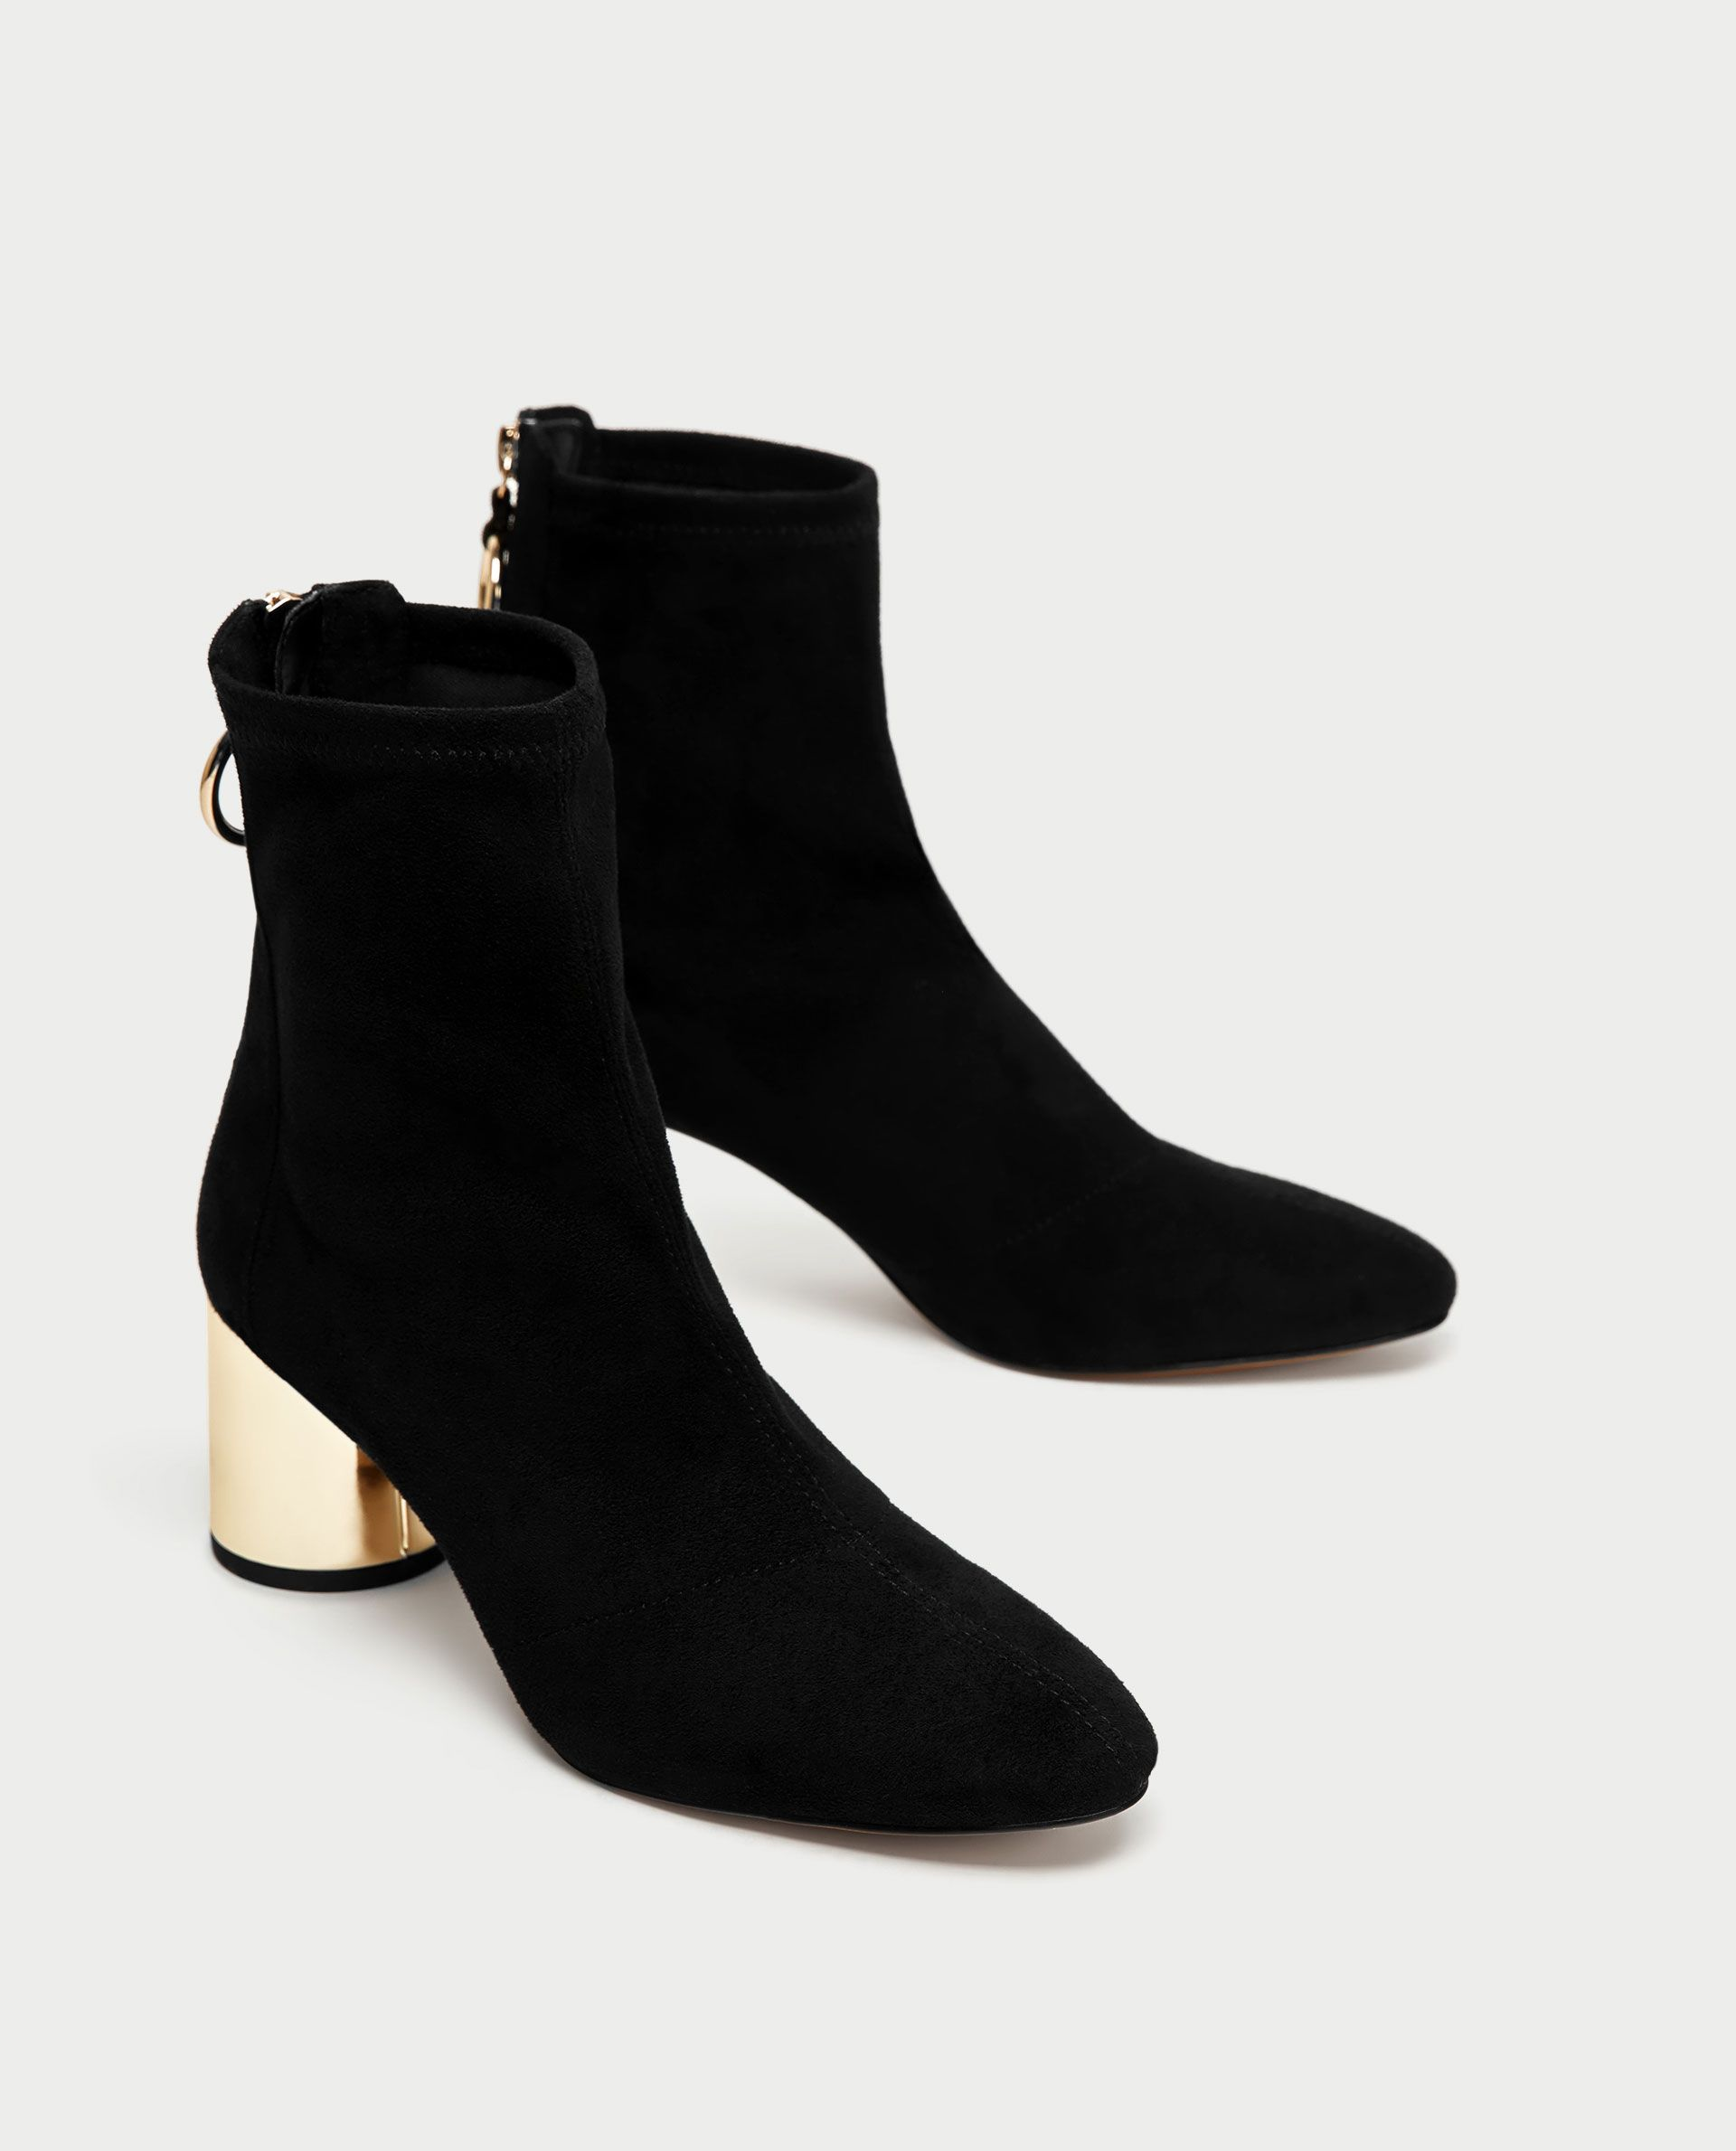 59e7ad61d68a ZARA - WOMAN - ANKLE BOOTS WITH METALLIC HEELS